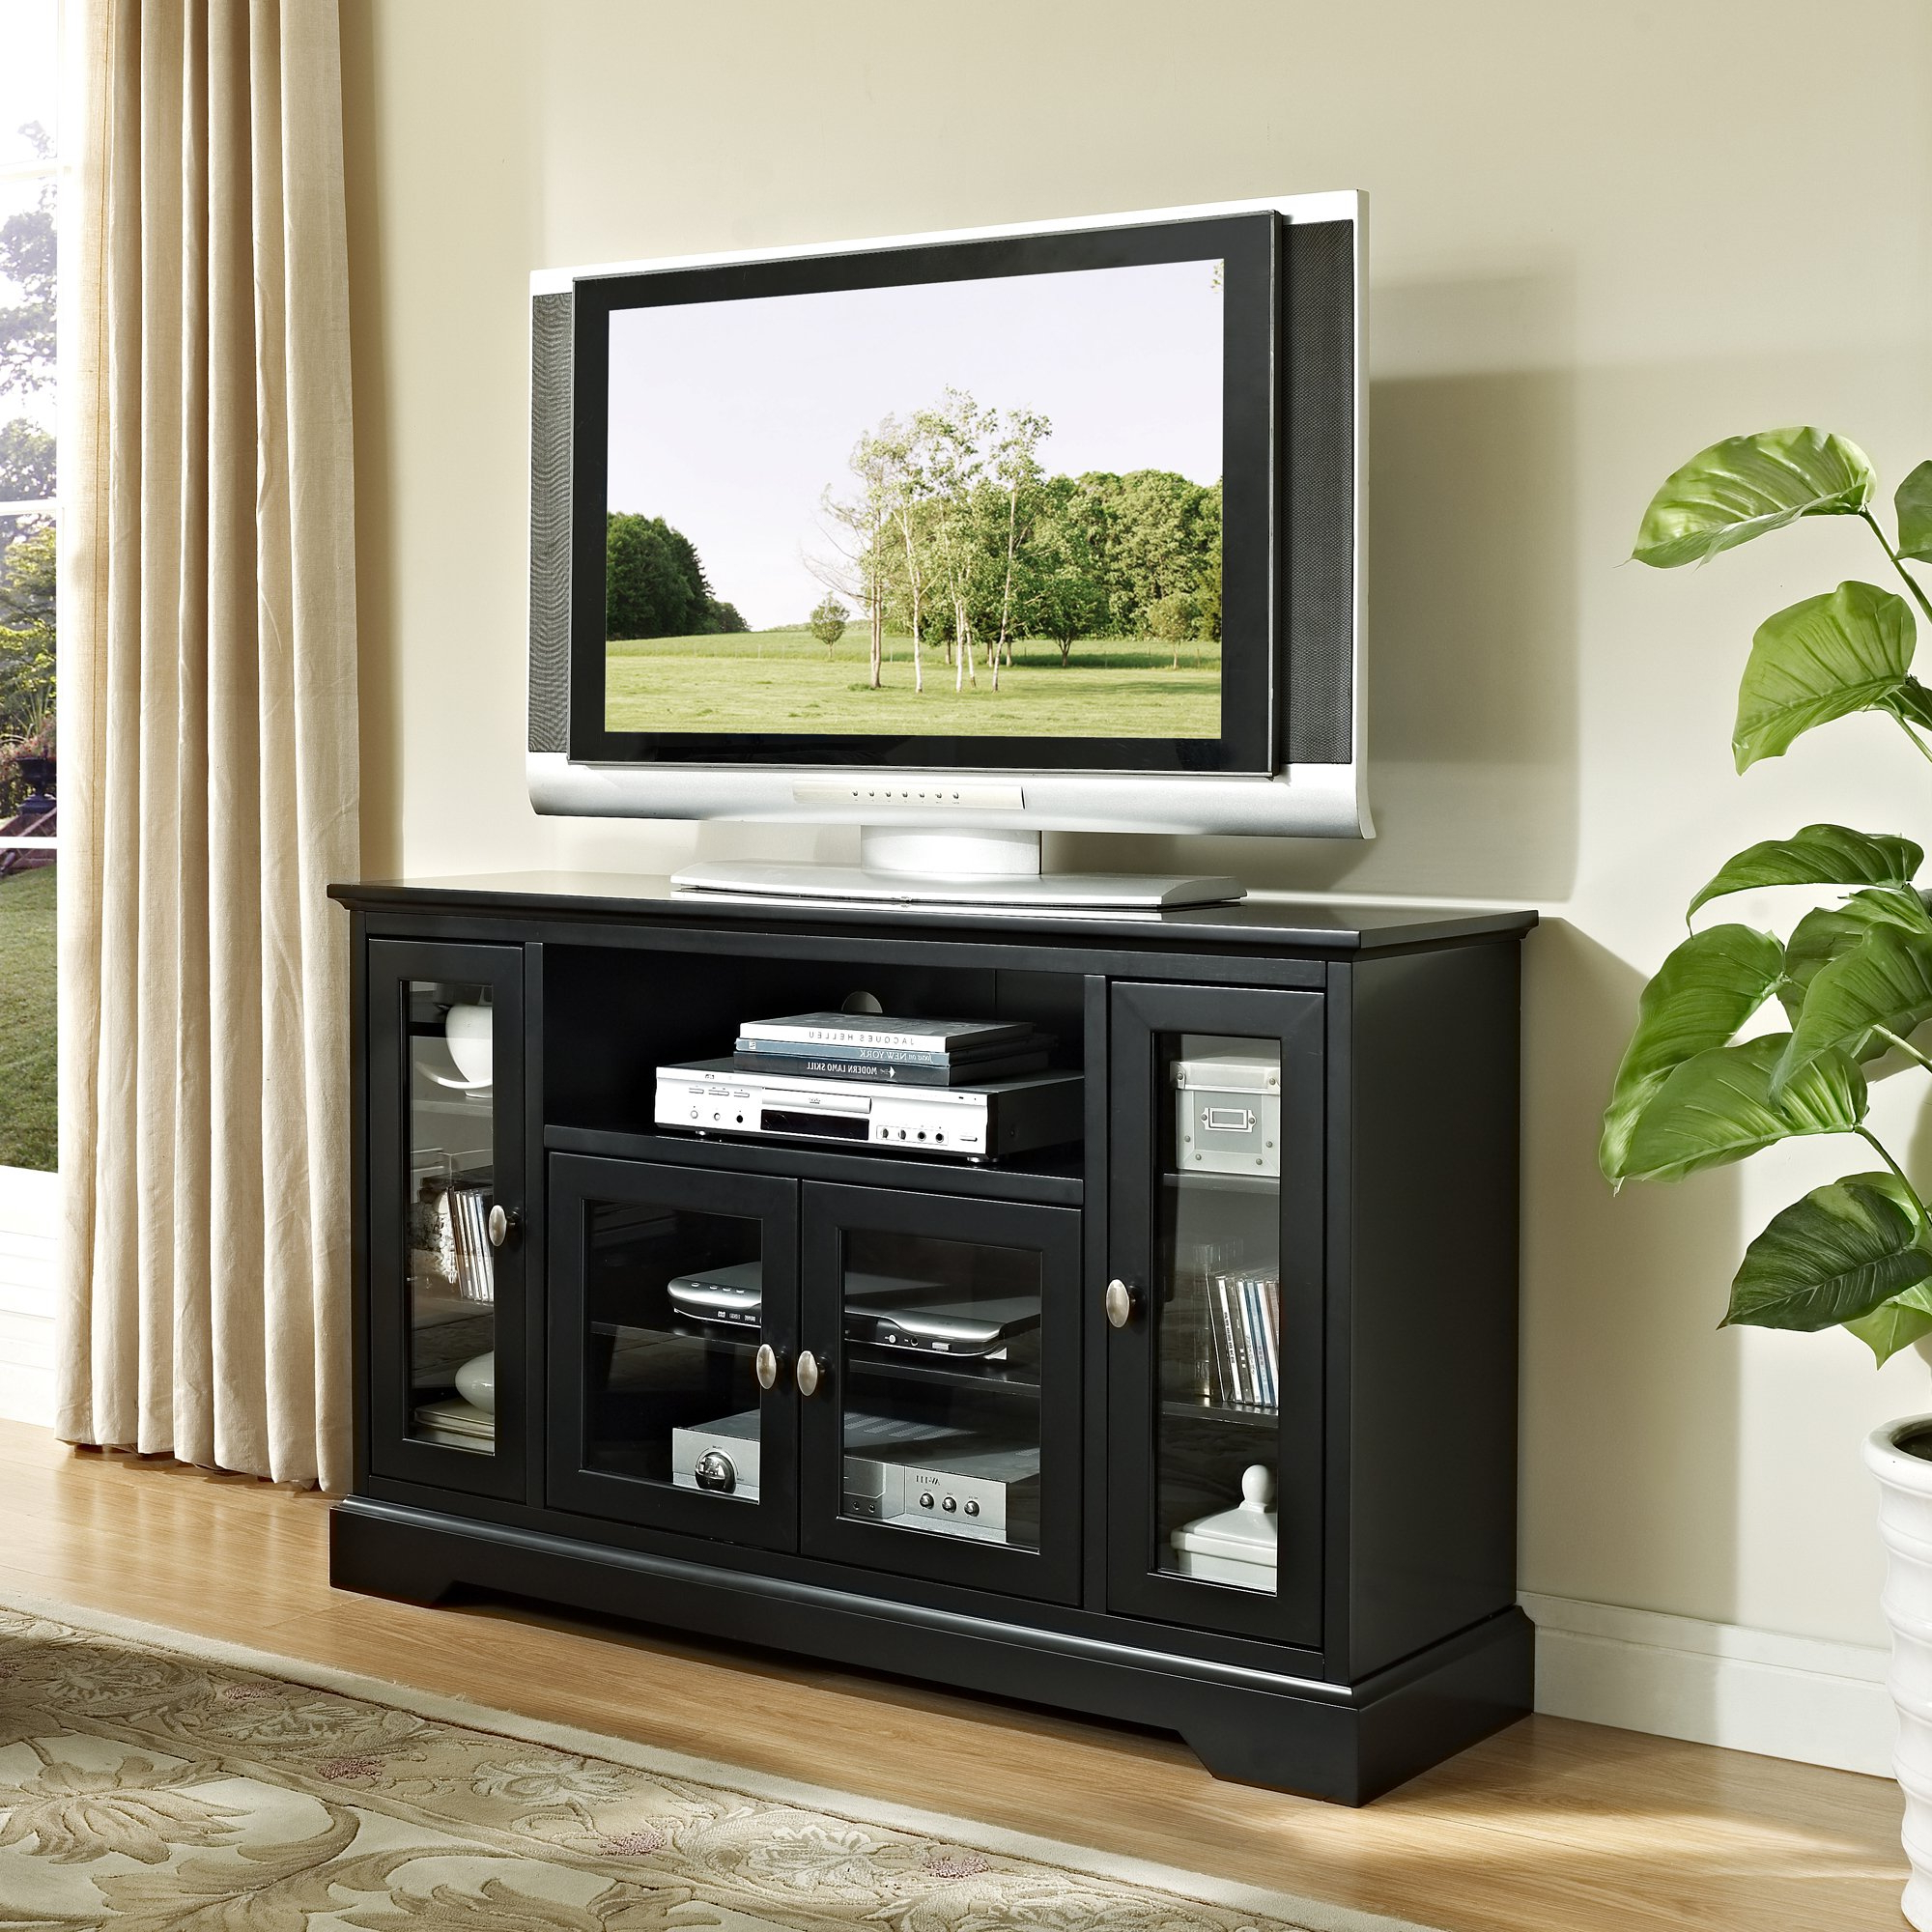 Tv Stands For Tube Tvs Regarding Trendy Smal Screen Lots Hdmi For Ideas Computer Cyber Dimensions Monday (View 19 of 20)